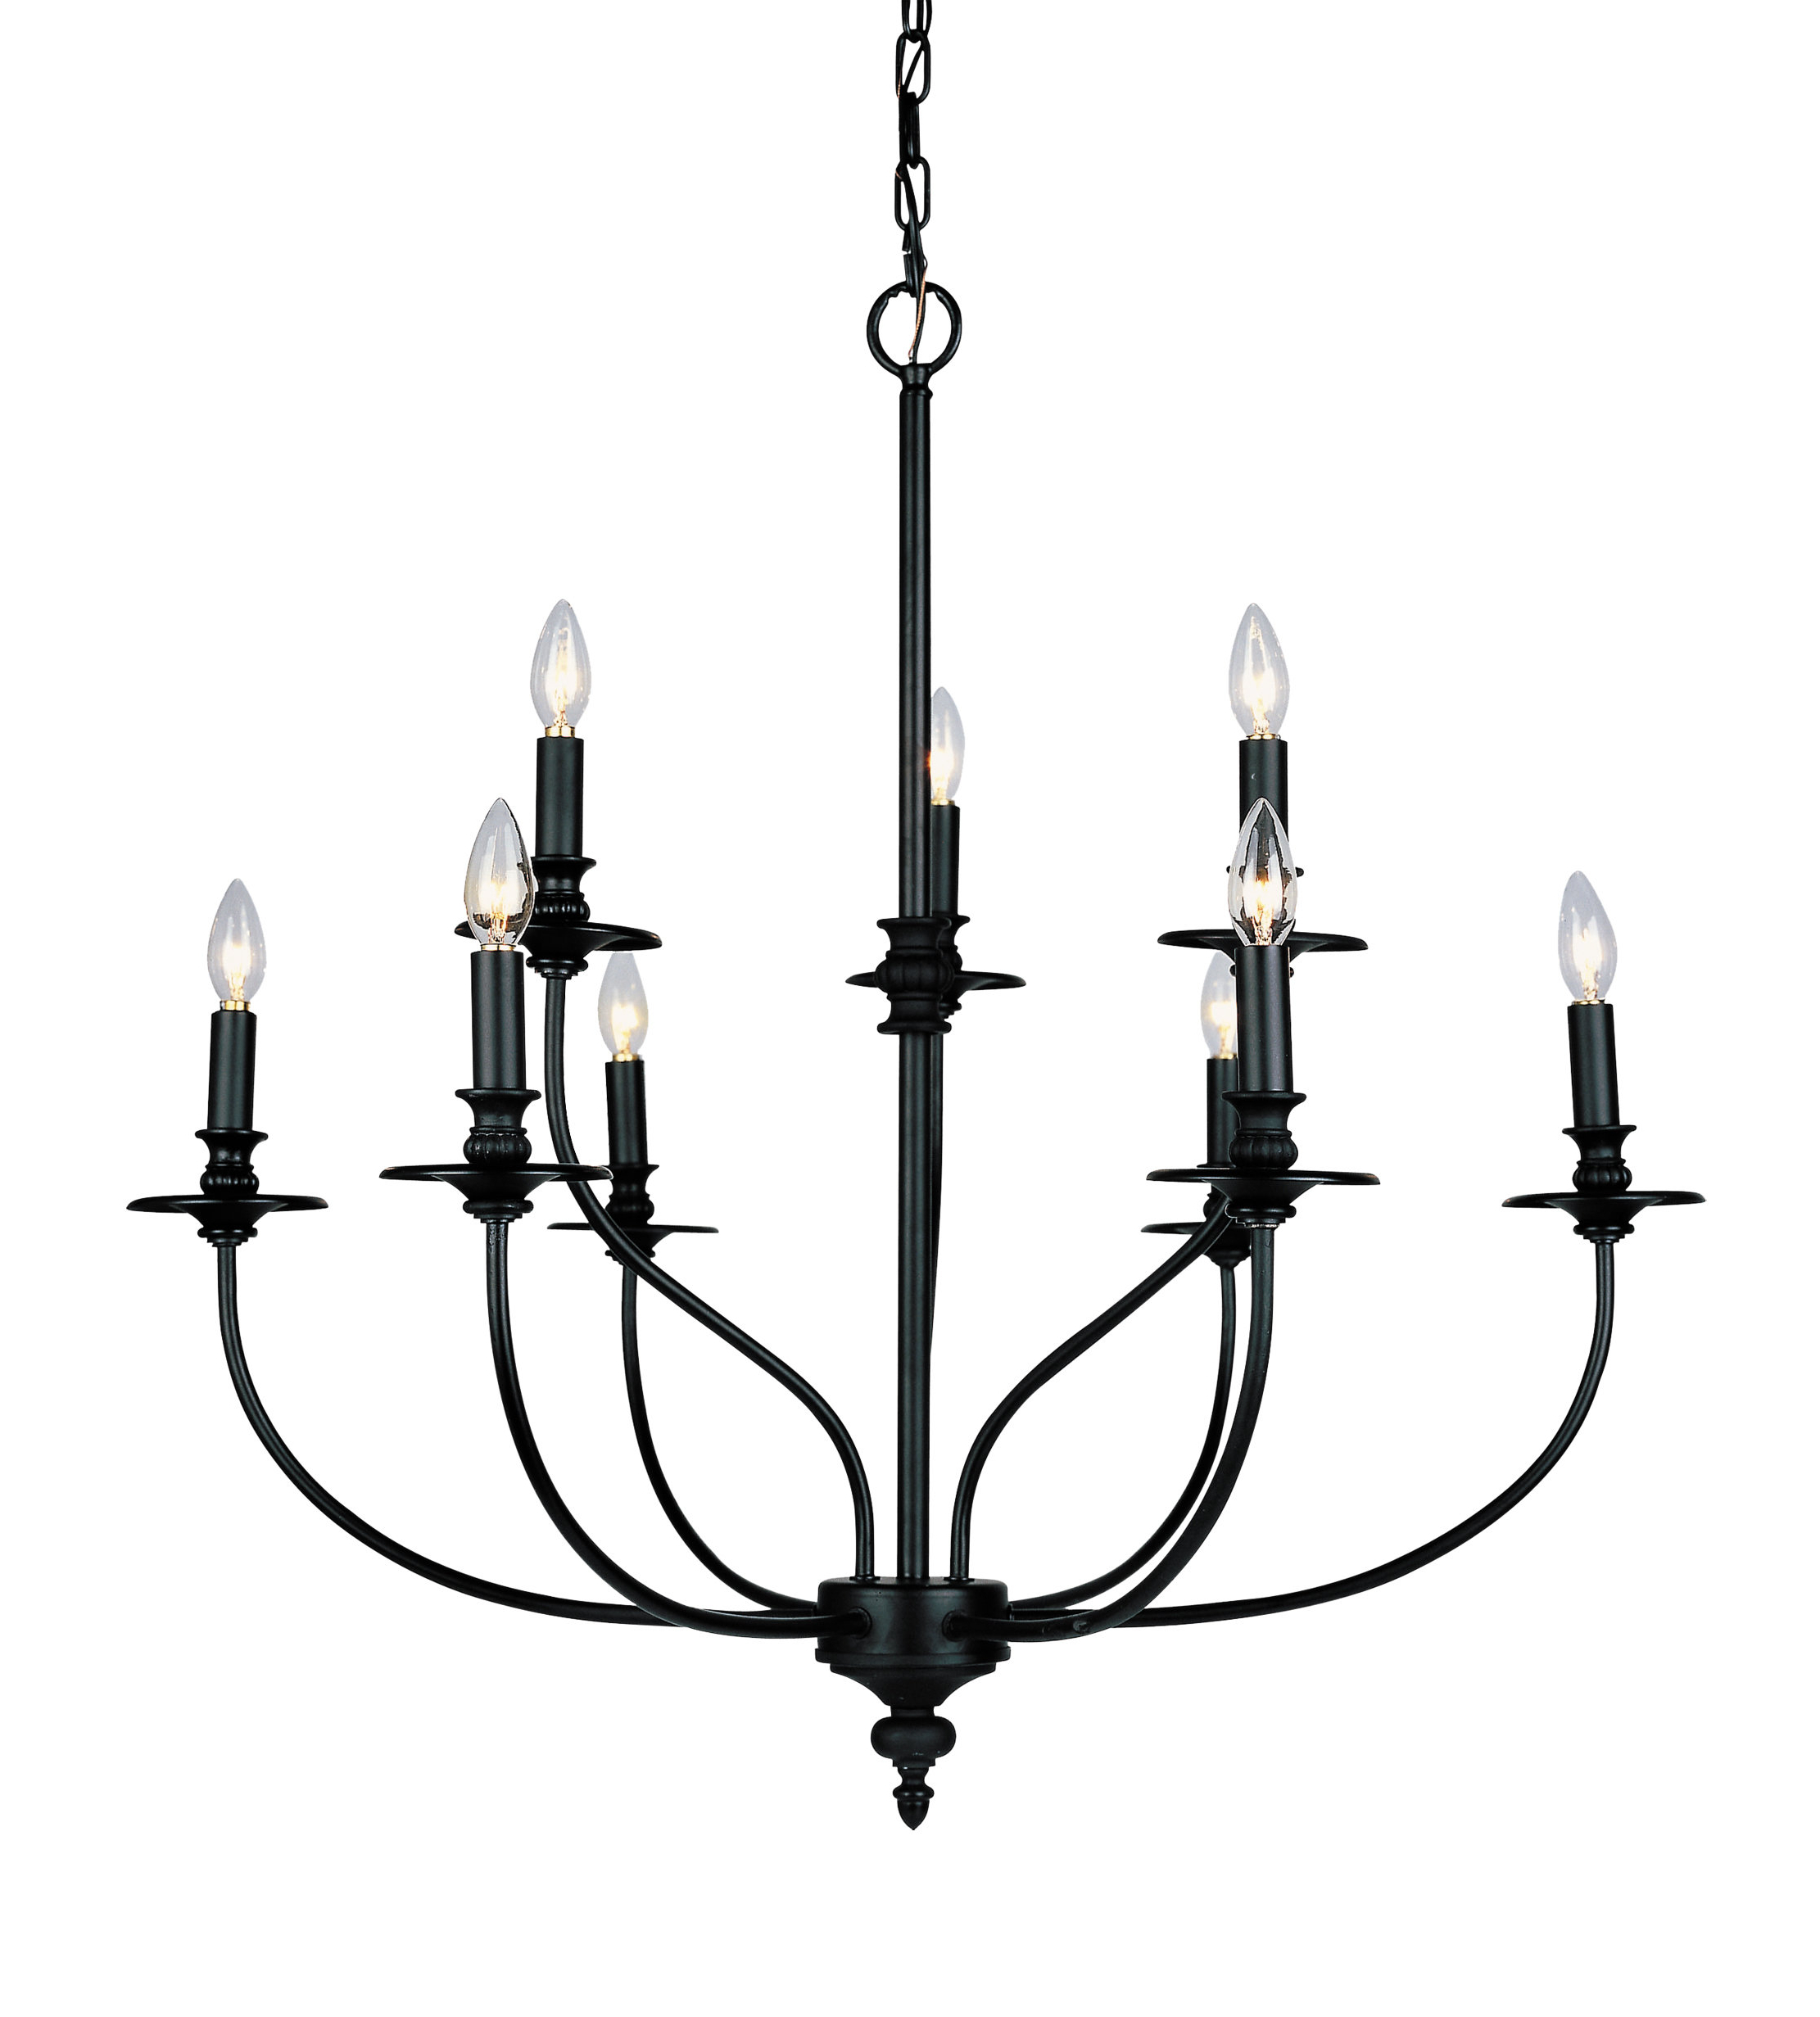 Giverny 9-Light Candle Style Chandelier within 2019 Giverny 9-Light Candle Style Chandeliers